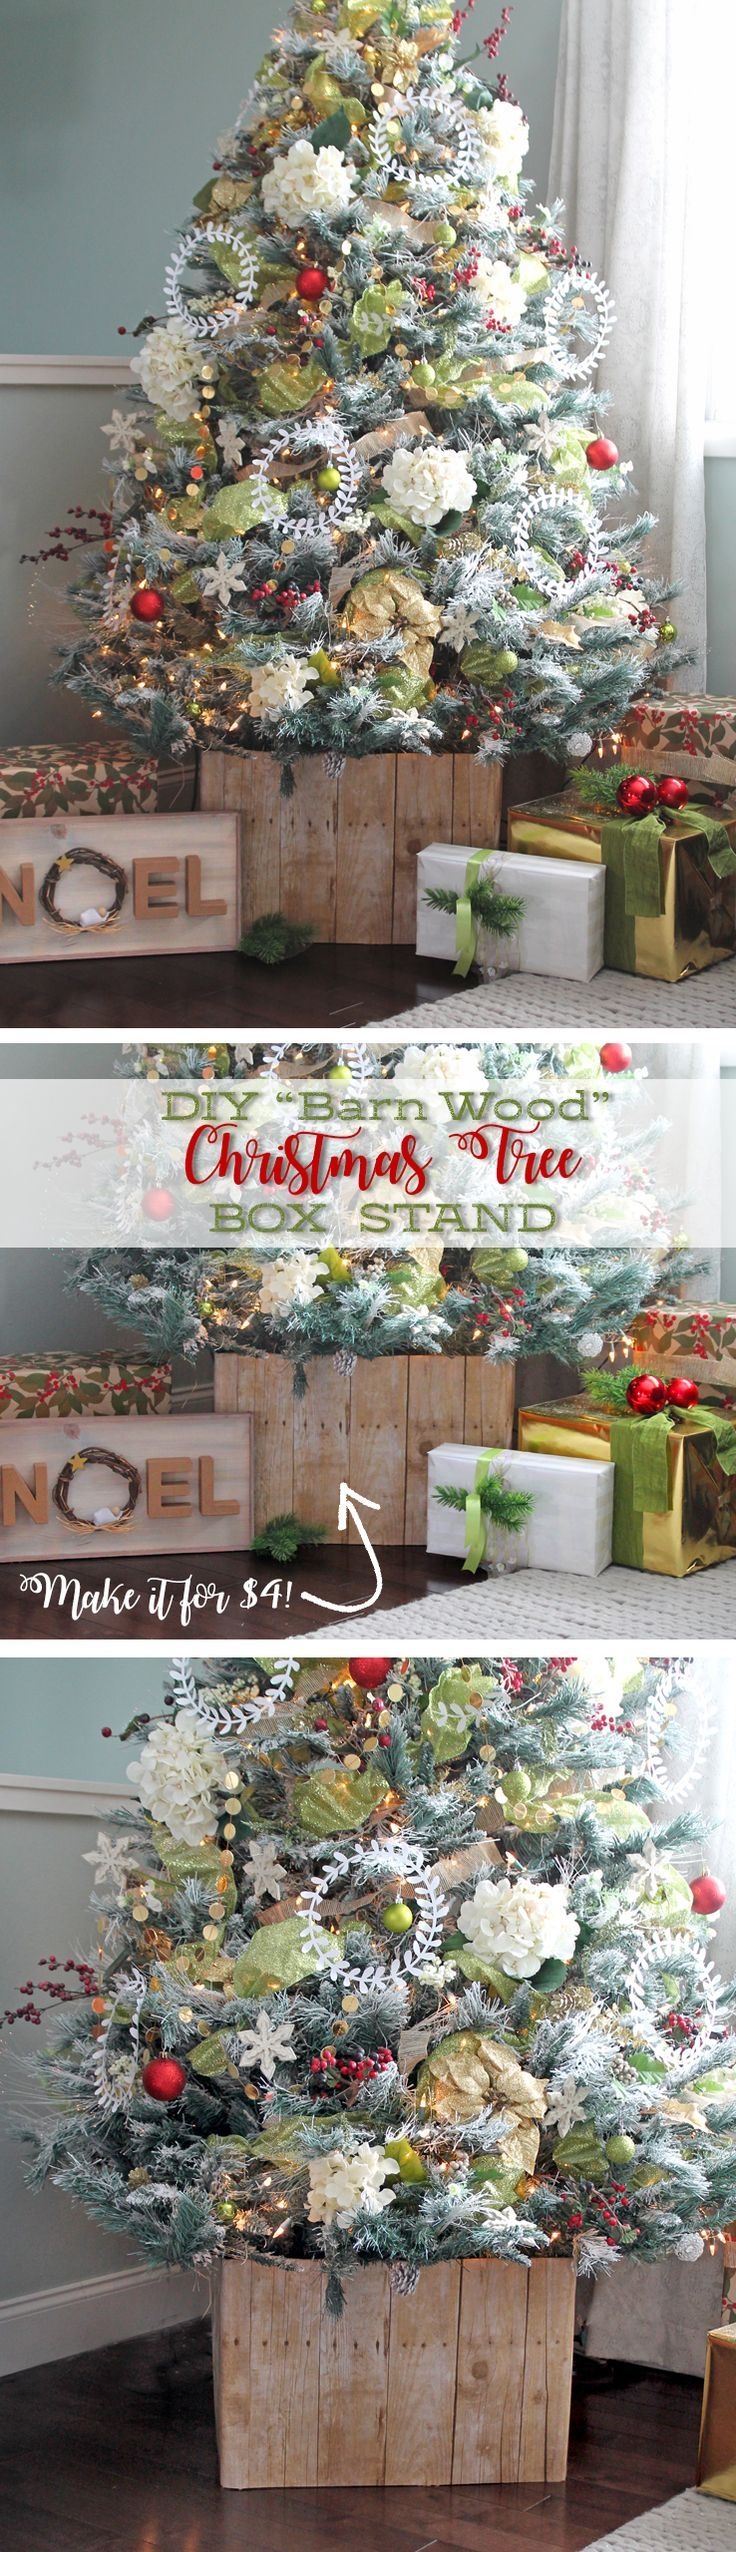 No way! This wooden Christmas tree box is actually NOT made of wood! It took about an hour to make and only cost $4. MIND. BLOWN. Such a cool Christmas decorating hack.